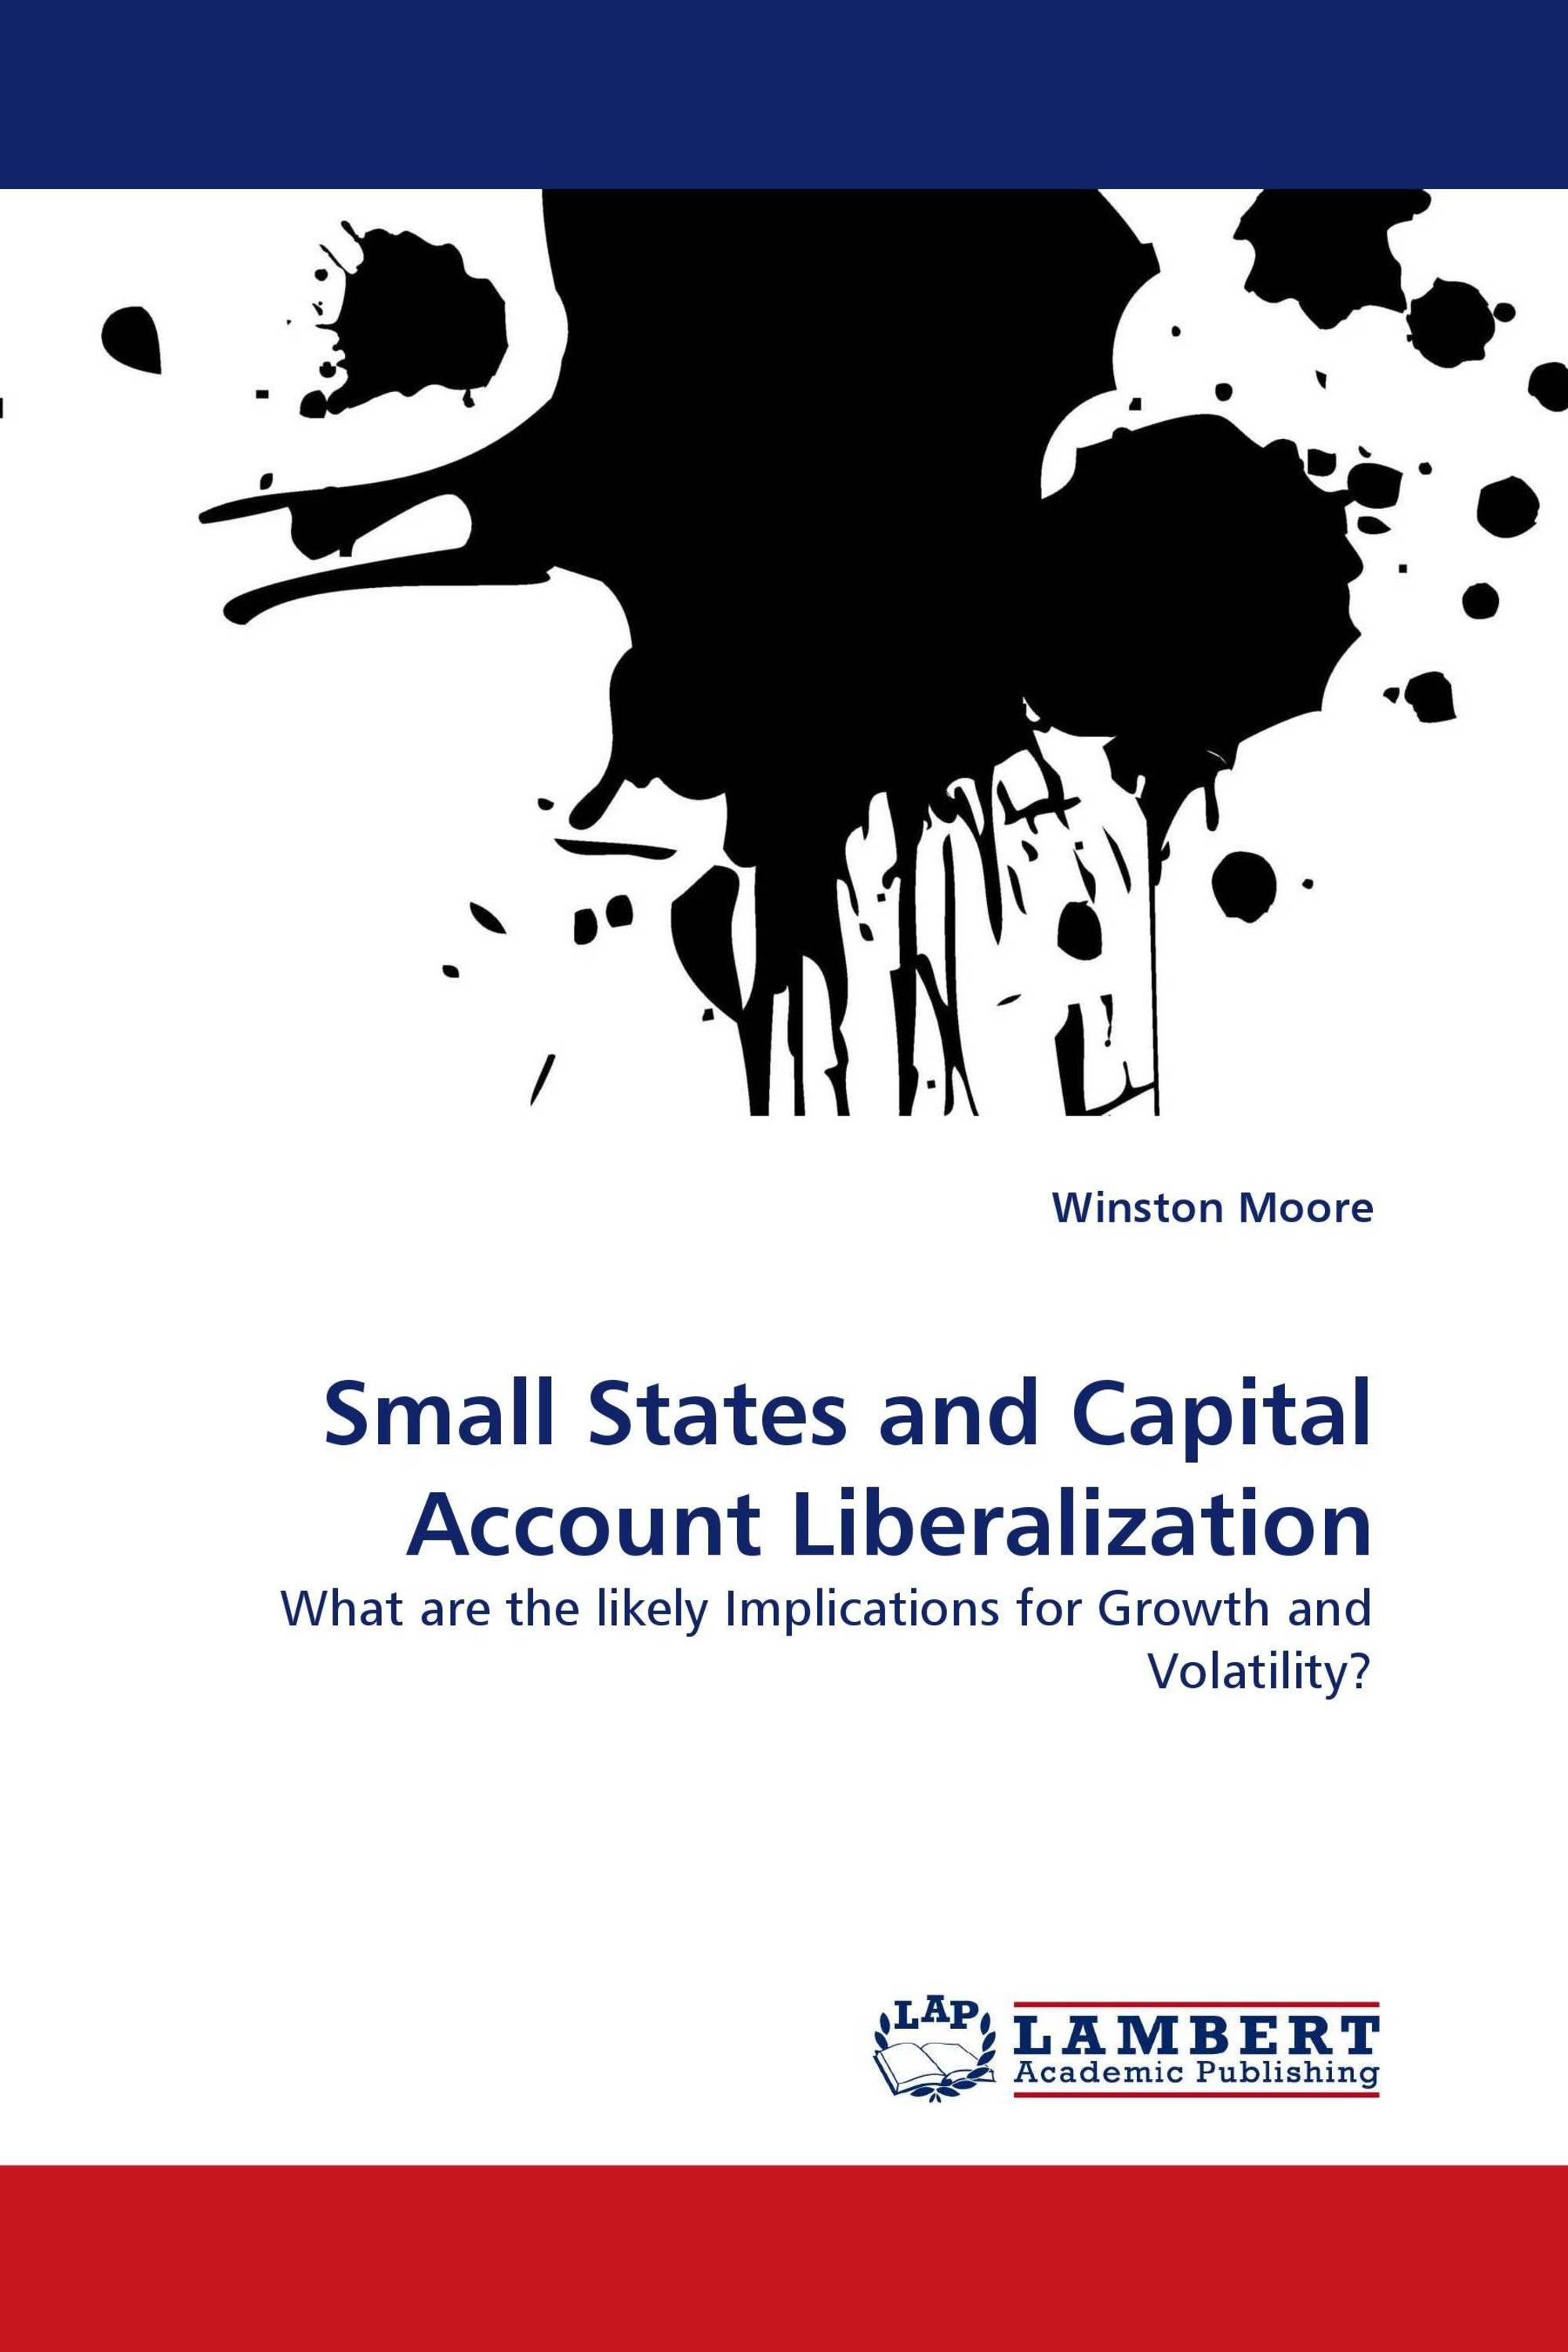 Small States and Capital Account Liberalization